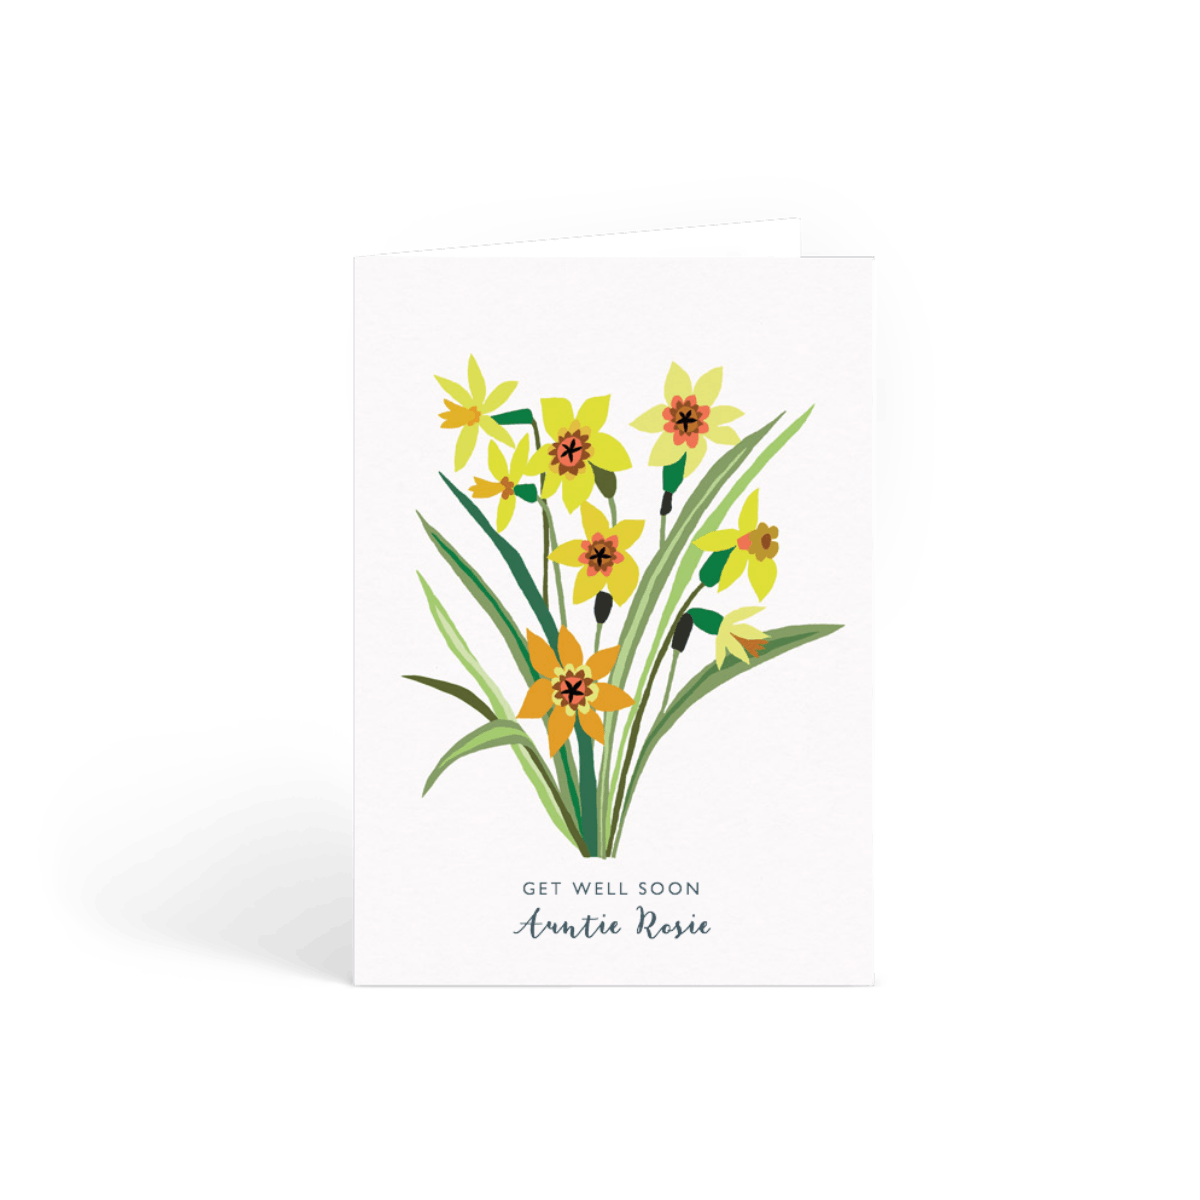 Https%3a%2f%2fwww.papier.com%2fproduct image%2f20882%2f2%2fdaffodils 5334 vorderseite 1492089550.png?ixlib=rb 1.1